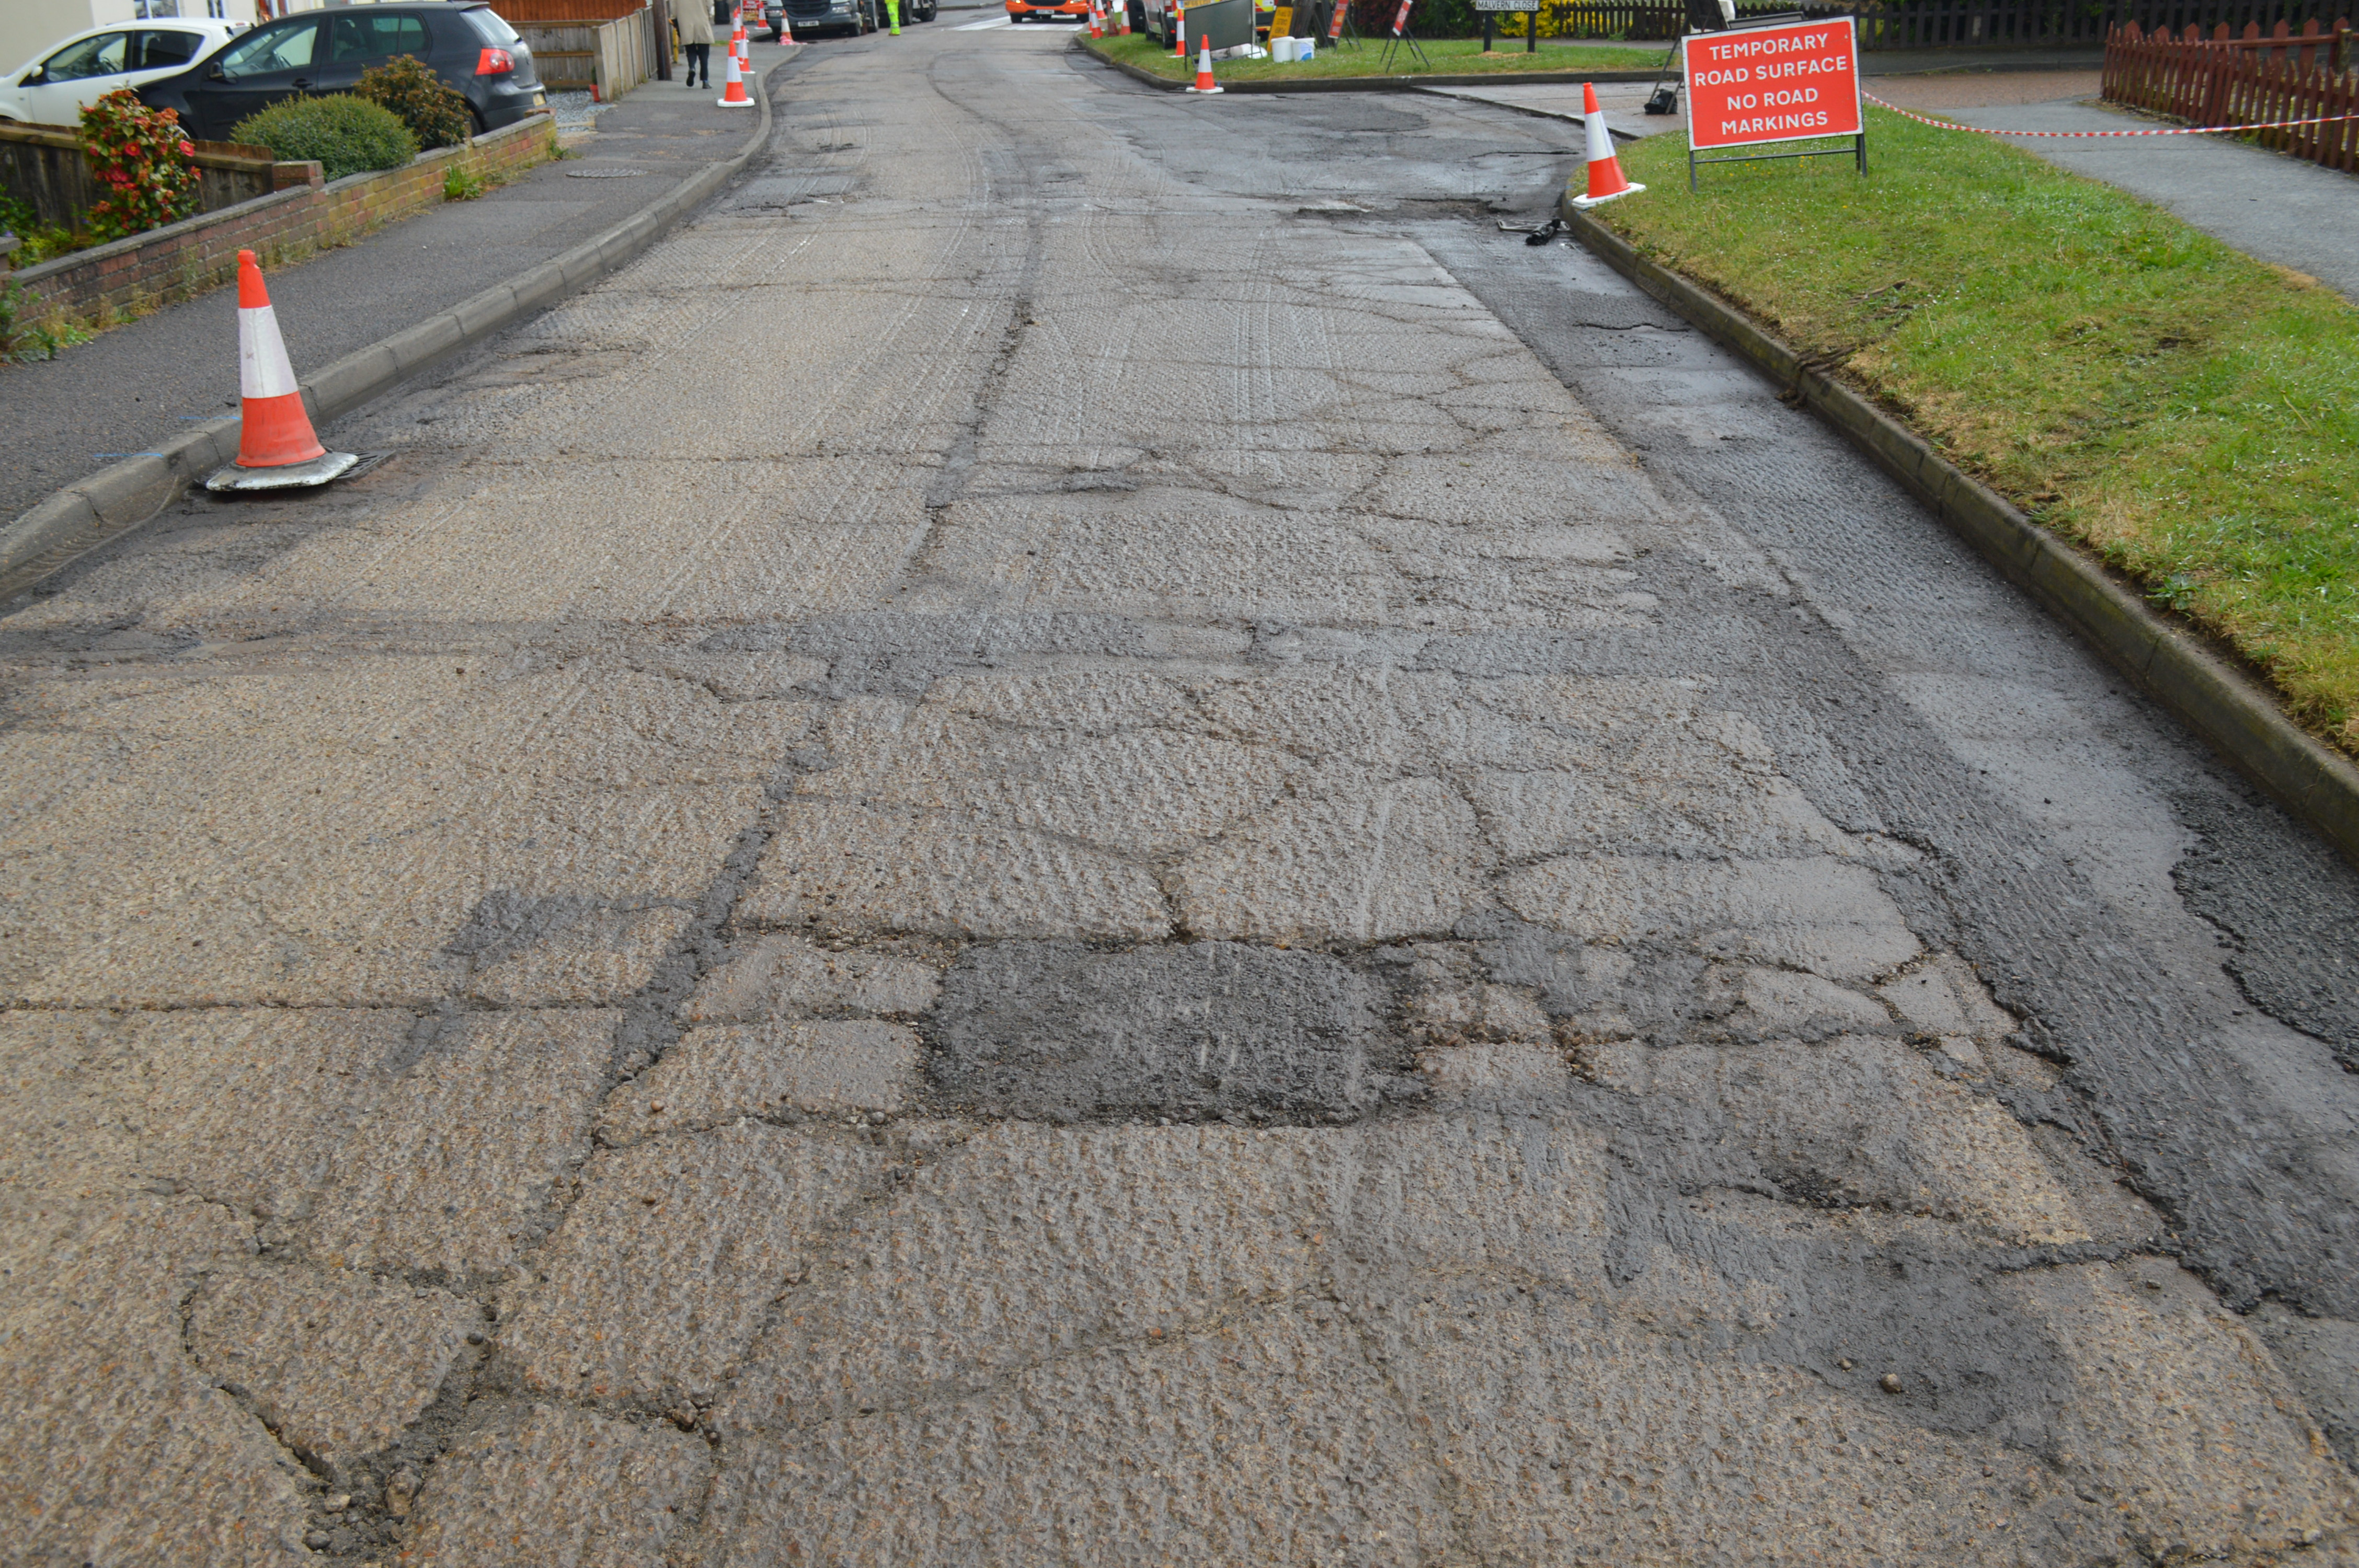 What are the types of cracking in roads?